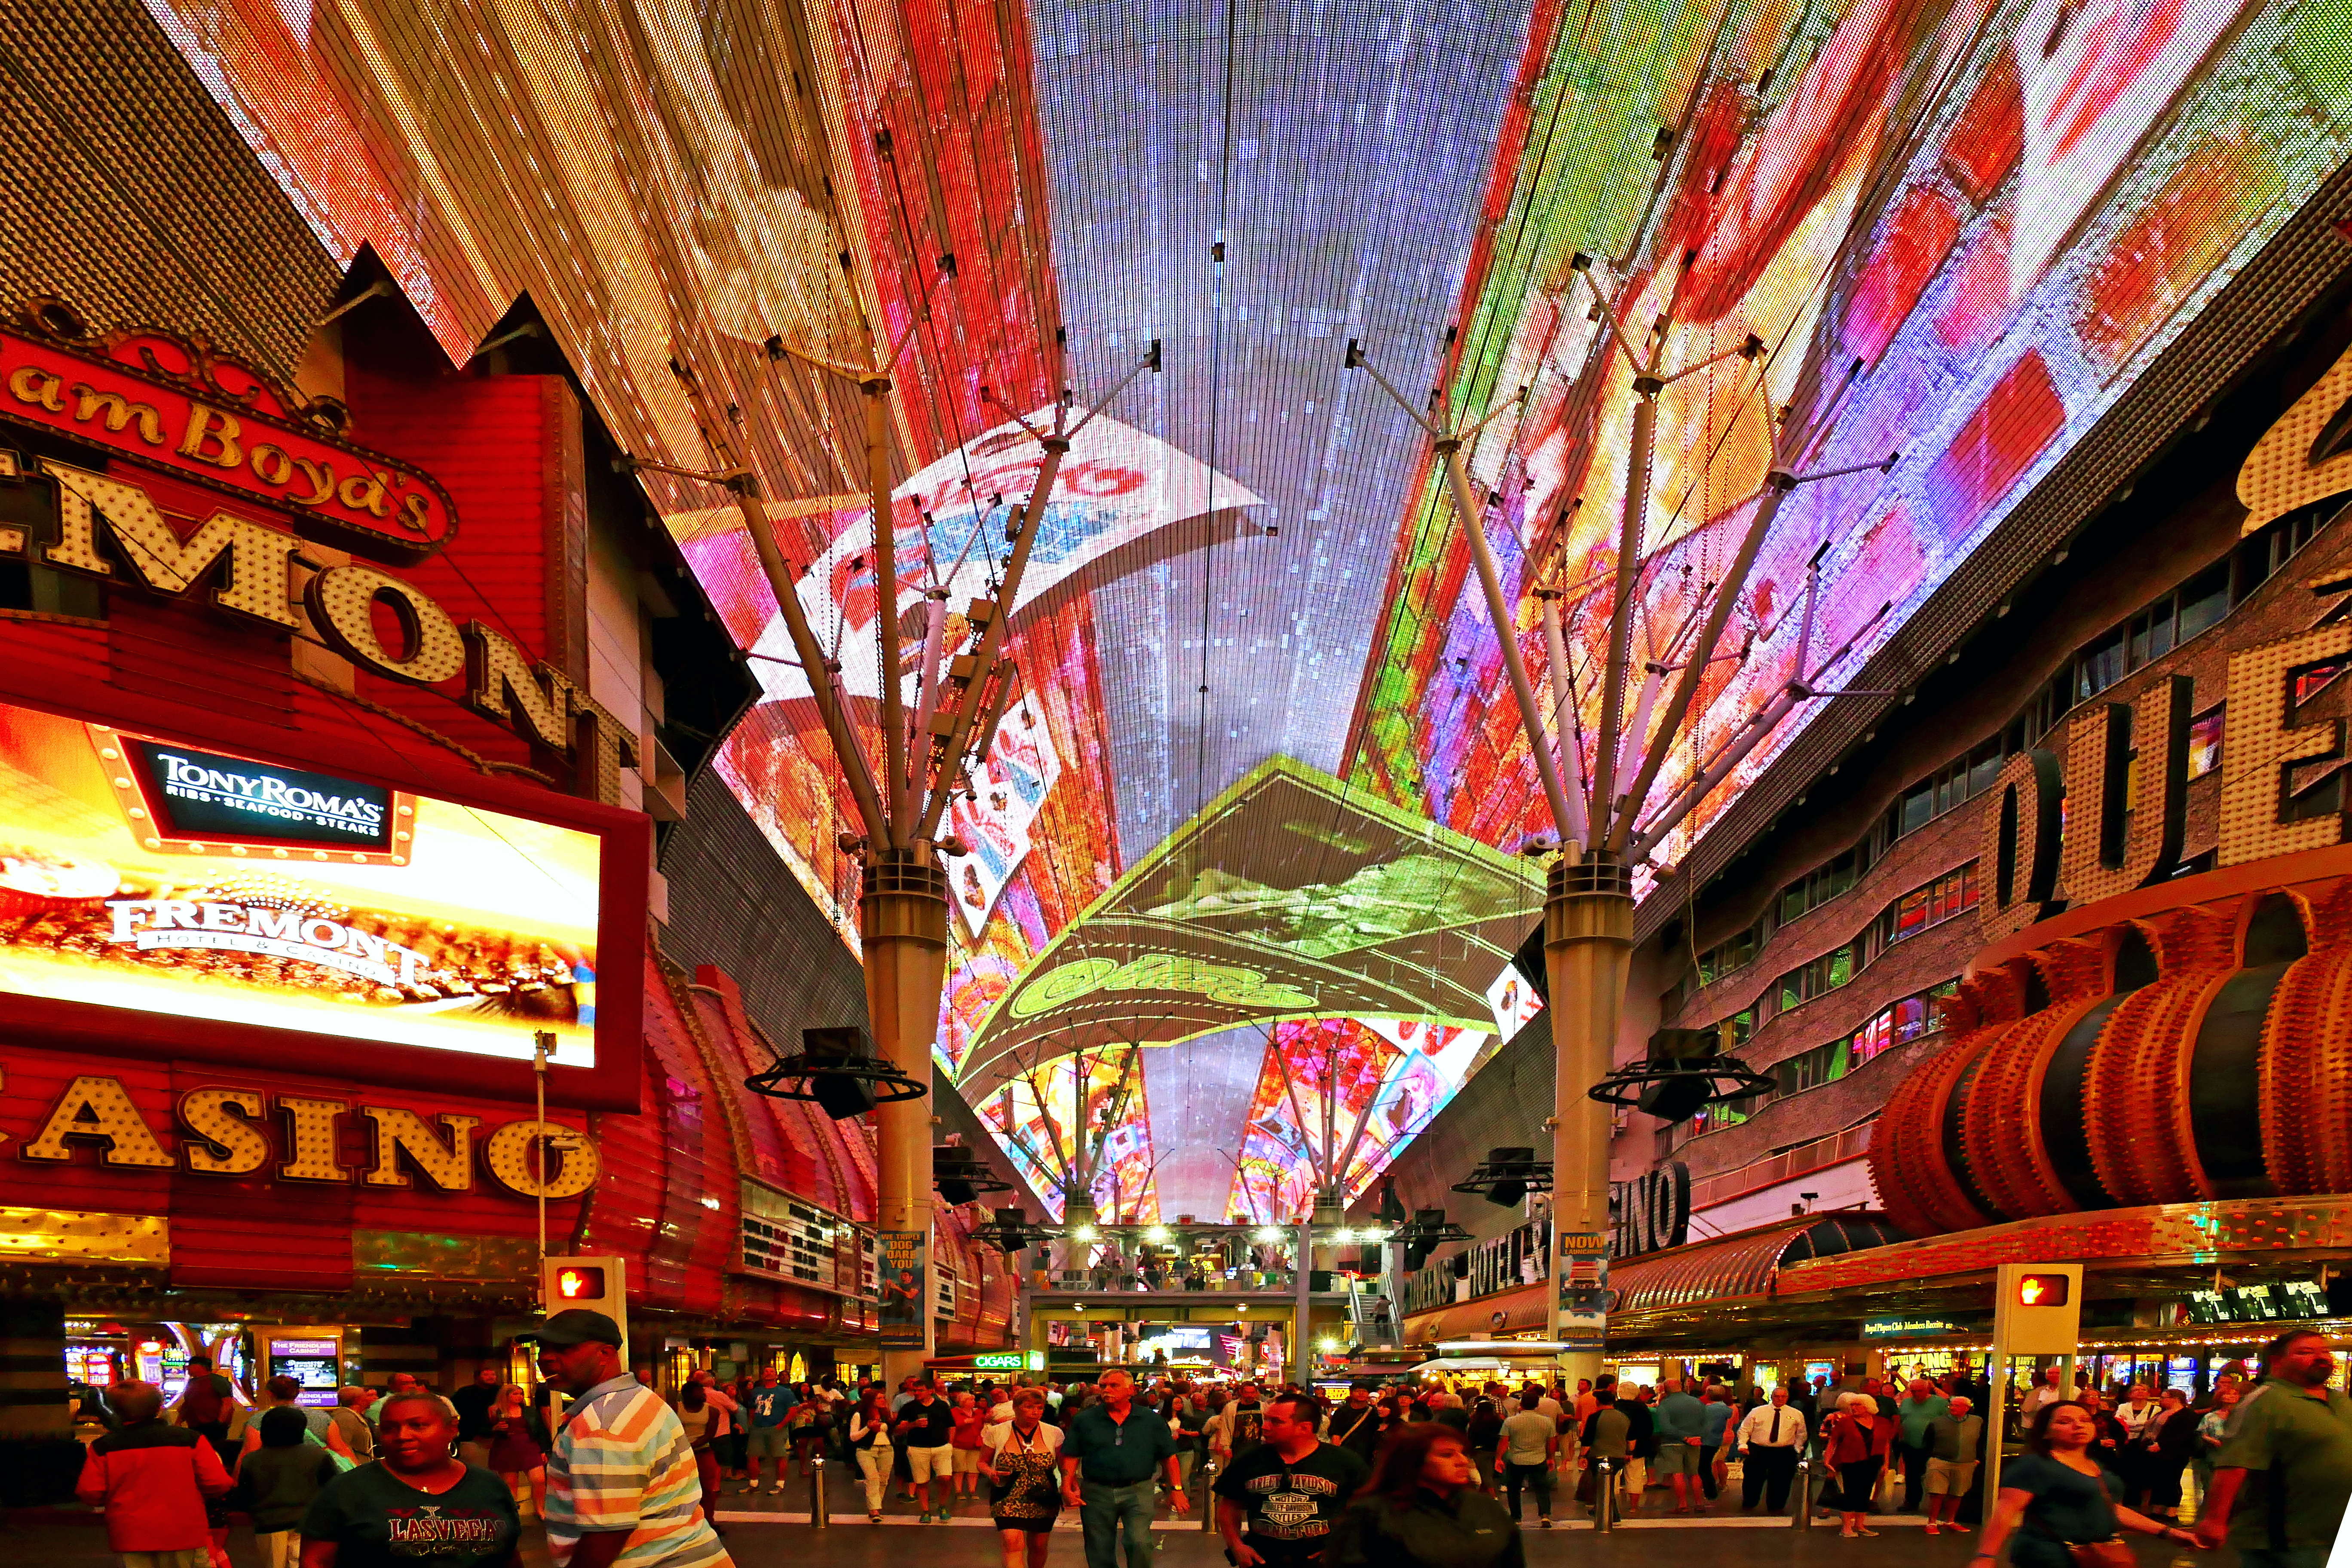 The Freemont Street Experience, Las Vegas: a pedestrian mall surrounded by lights and screens in an array of different colours.